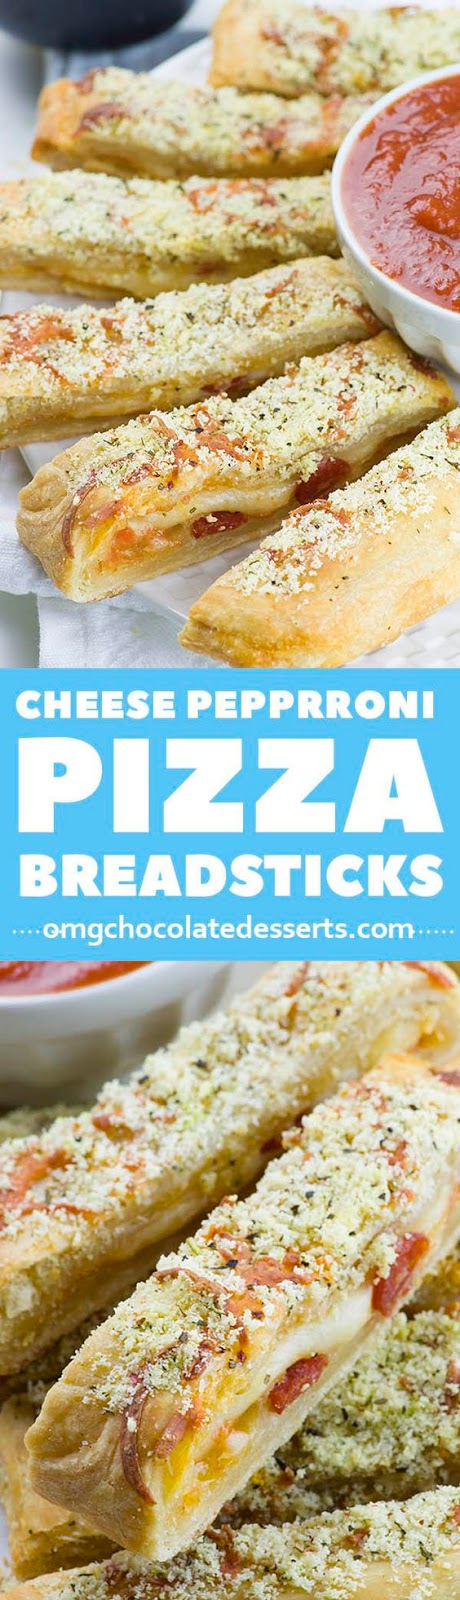 ★★★★☆ 7561 ratings   Easy Cheesy Pizza Breadsticks #HEALTHYFOOD #EASYRECIPES #DINNER #LAUCH #DELICIOUS #EASY #HOLIDAYS #RECIPE #Easy #Cheesy #Pizza #Breadsticks